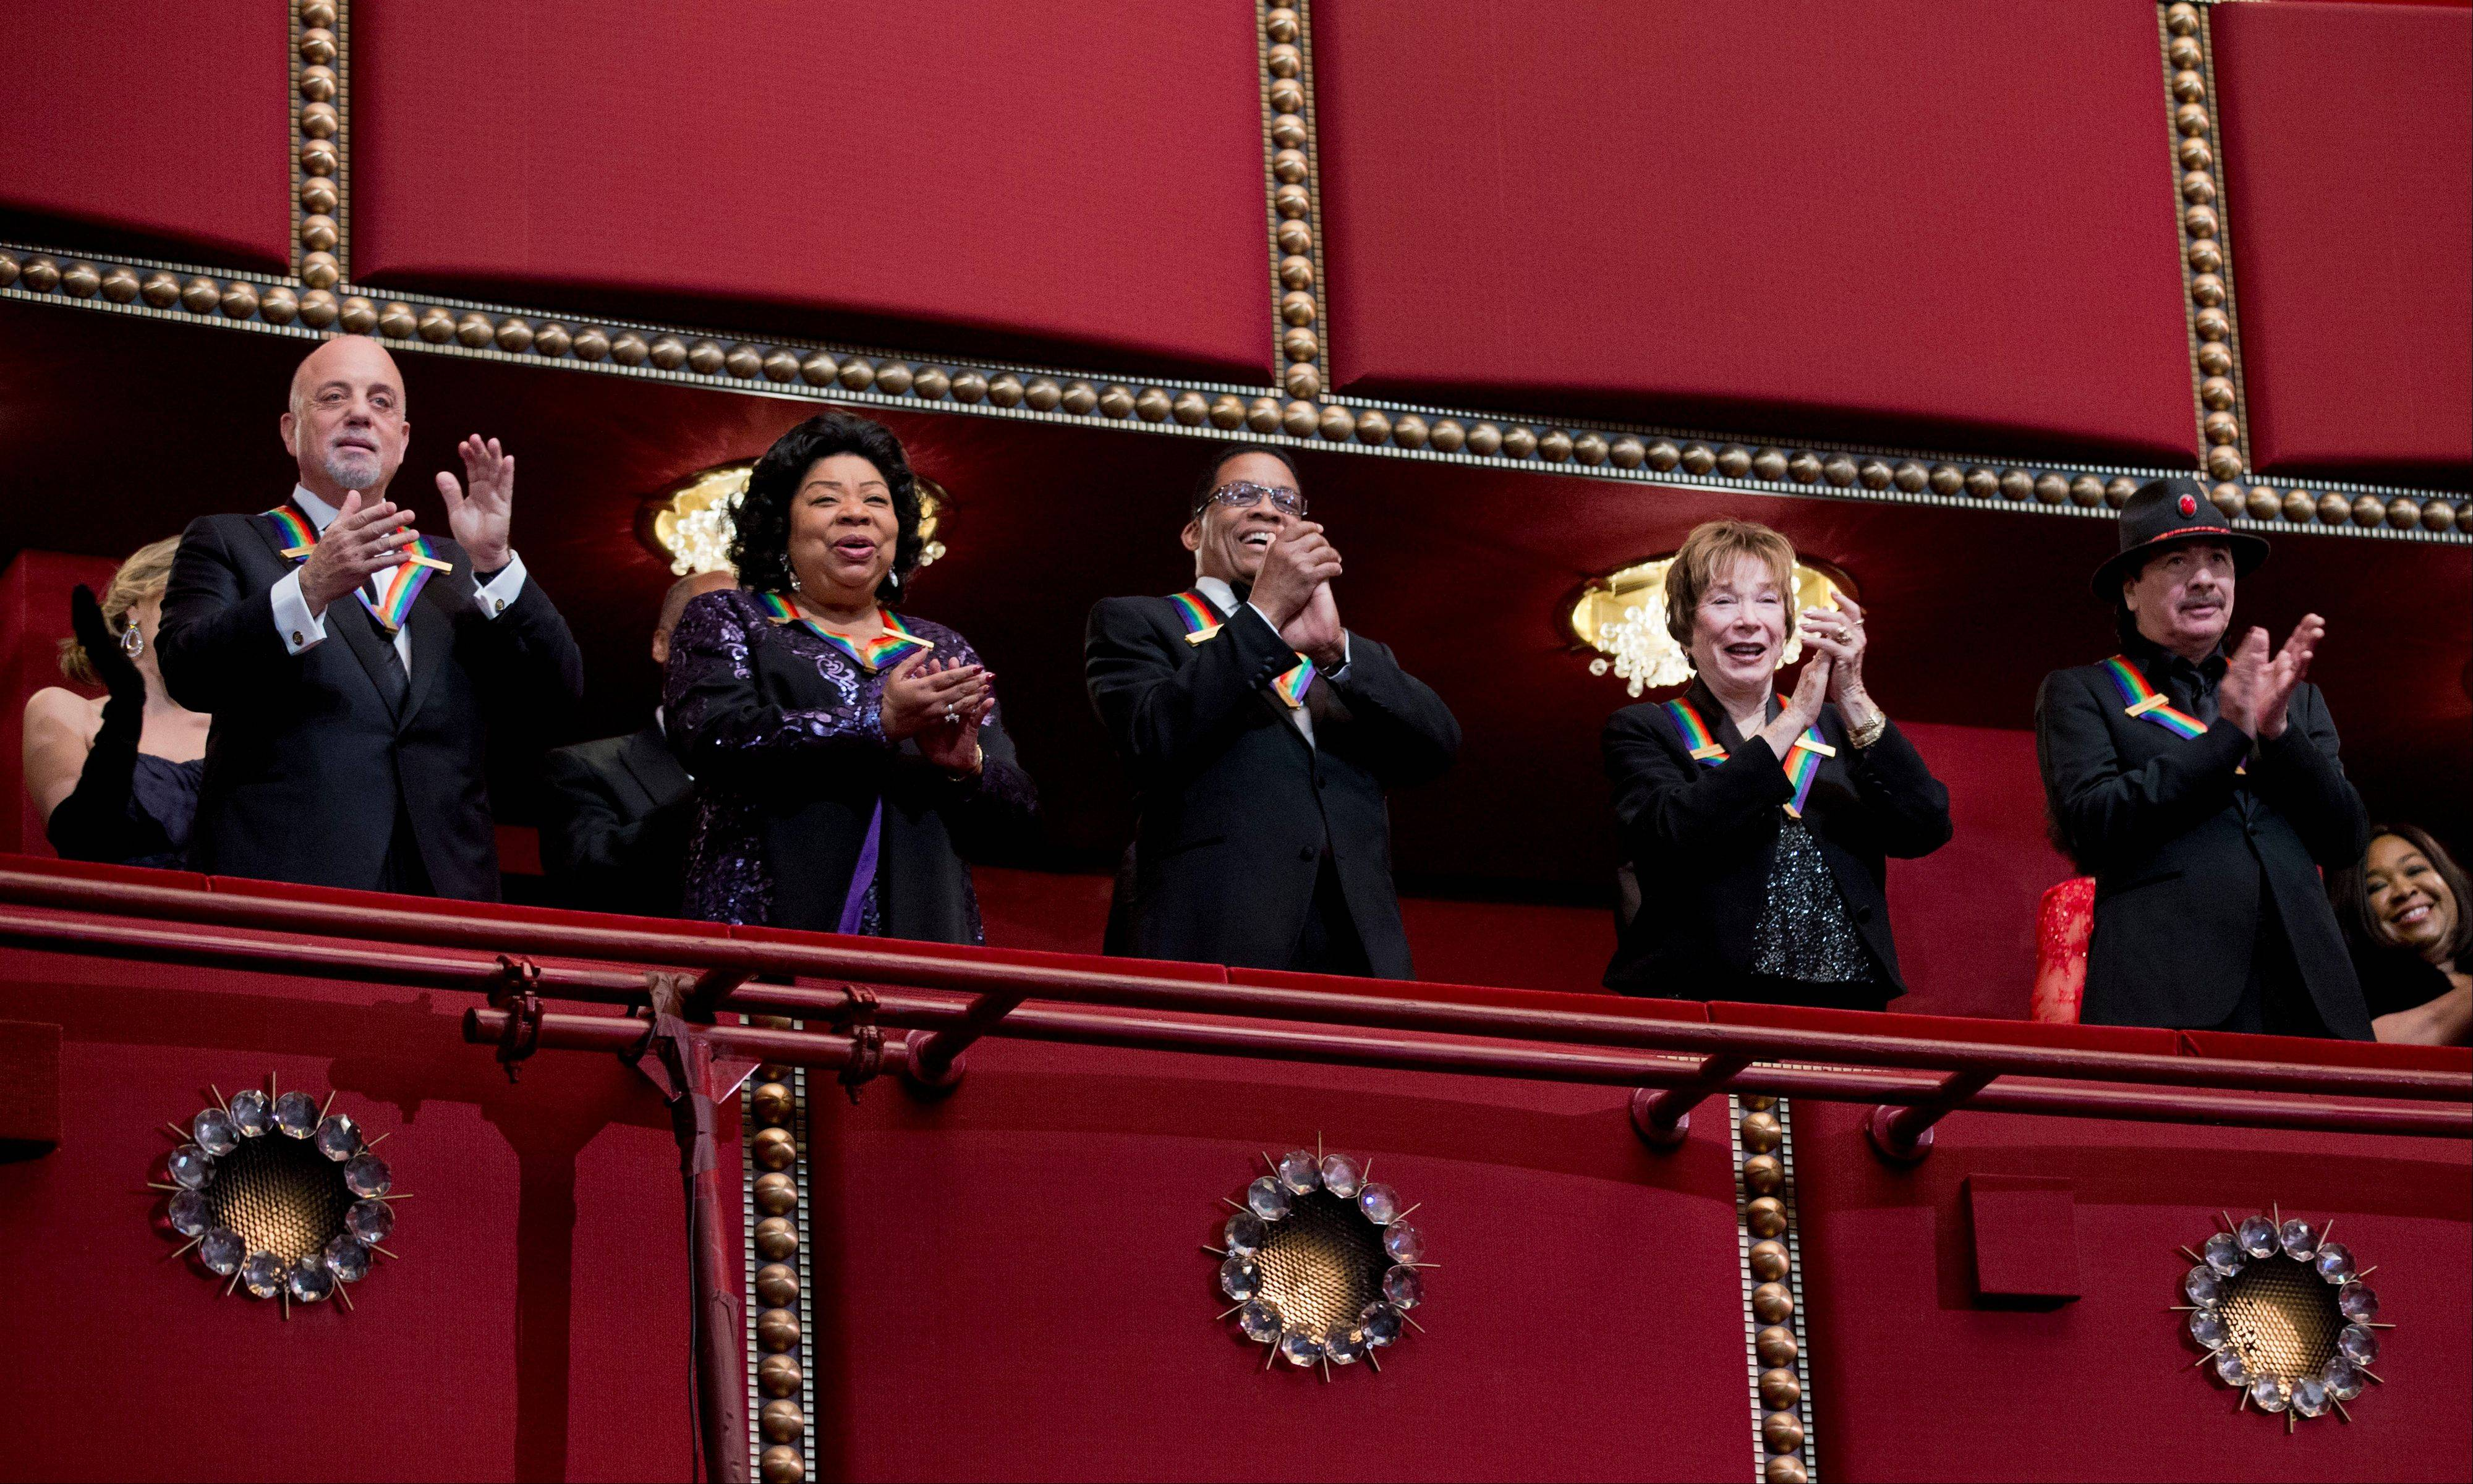 The recipients of the 2013 Kennedy Center Honors, from left, Billy Joel, Martina Arroyo, Herbie Hancock, Shirley MacLaine, and Carlos Santana, give their applause Sunday during the Kennedy Center Honors Gala at the Kennedy Center in Washington.